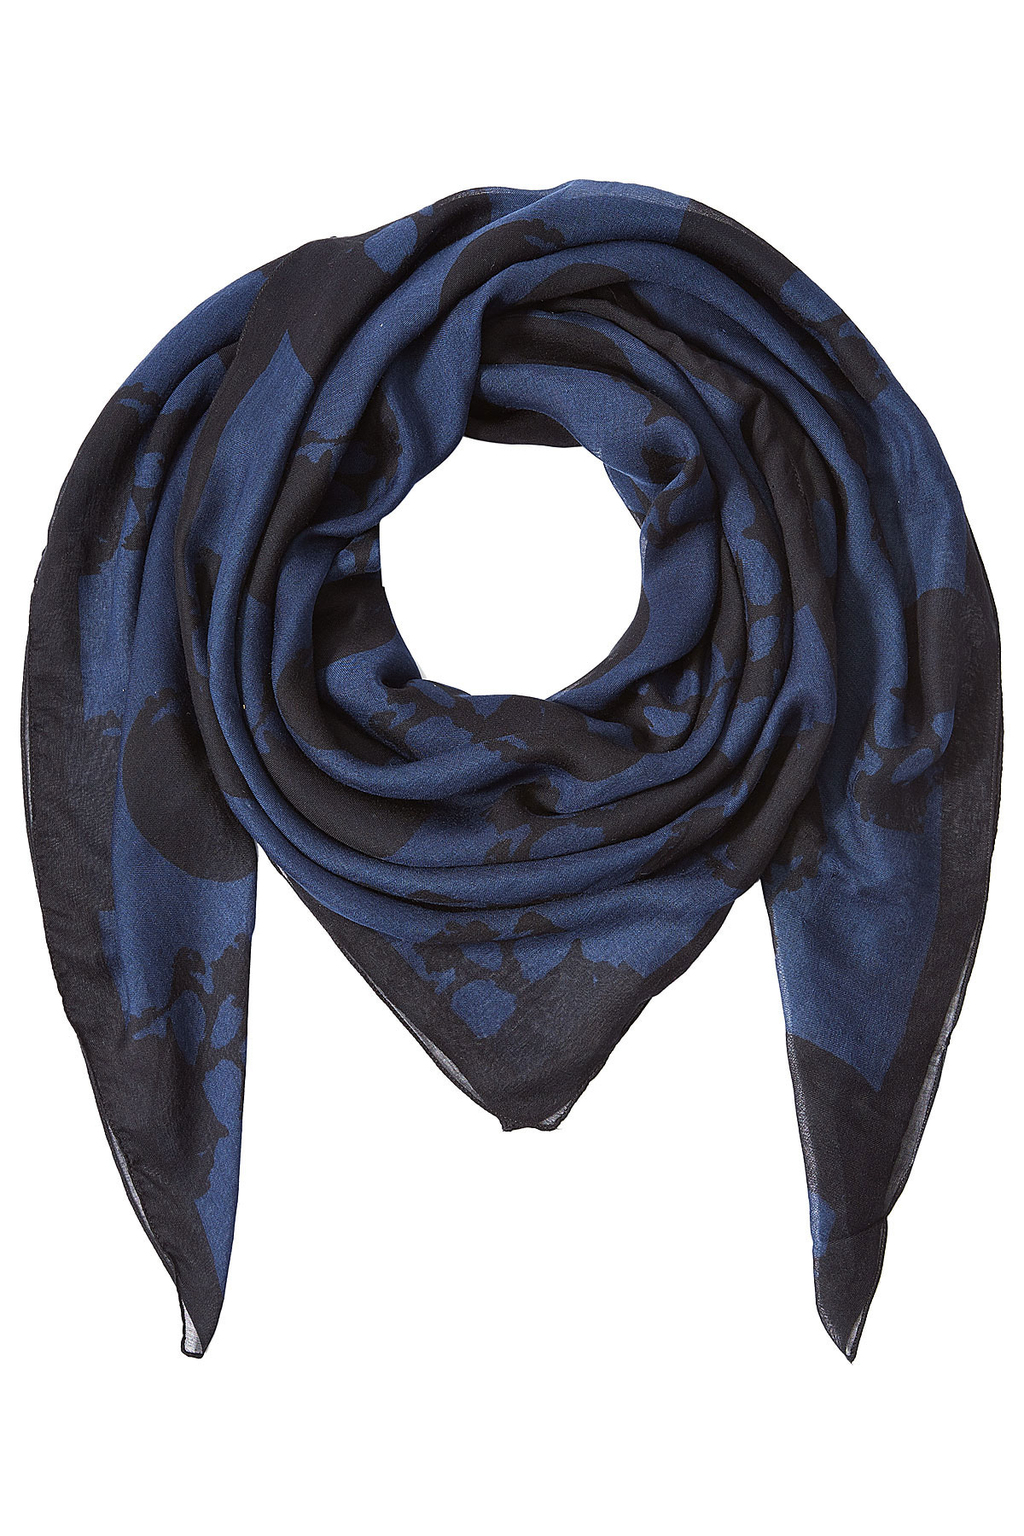 Printed Scarf With Silk - predominant colour: royal blue; secondary colour: black; occasions: casual, creative work; type of pattern: standard; style: square; size: standard; material: silk; pattern: patterned/print; season: s/s 2016; wardrobe: highlight